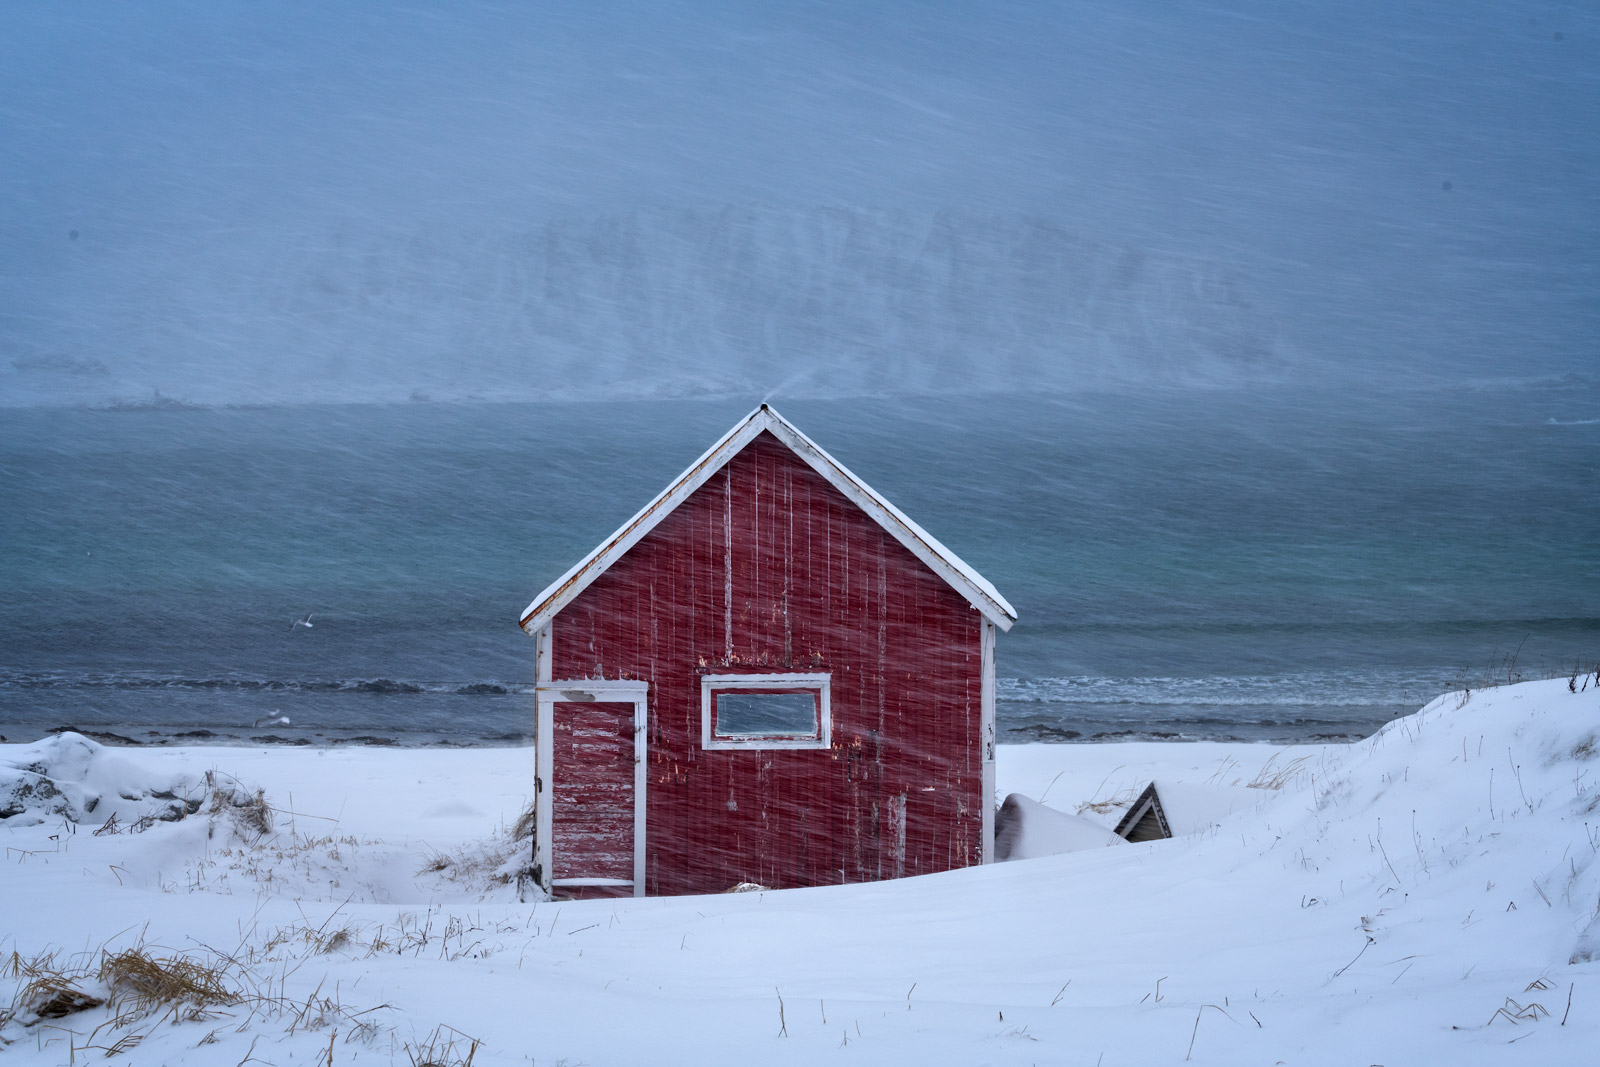 Norway, Ramberg, Winter, Boathouse, Snowstorm